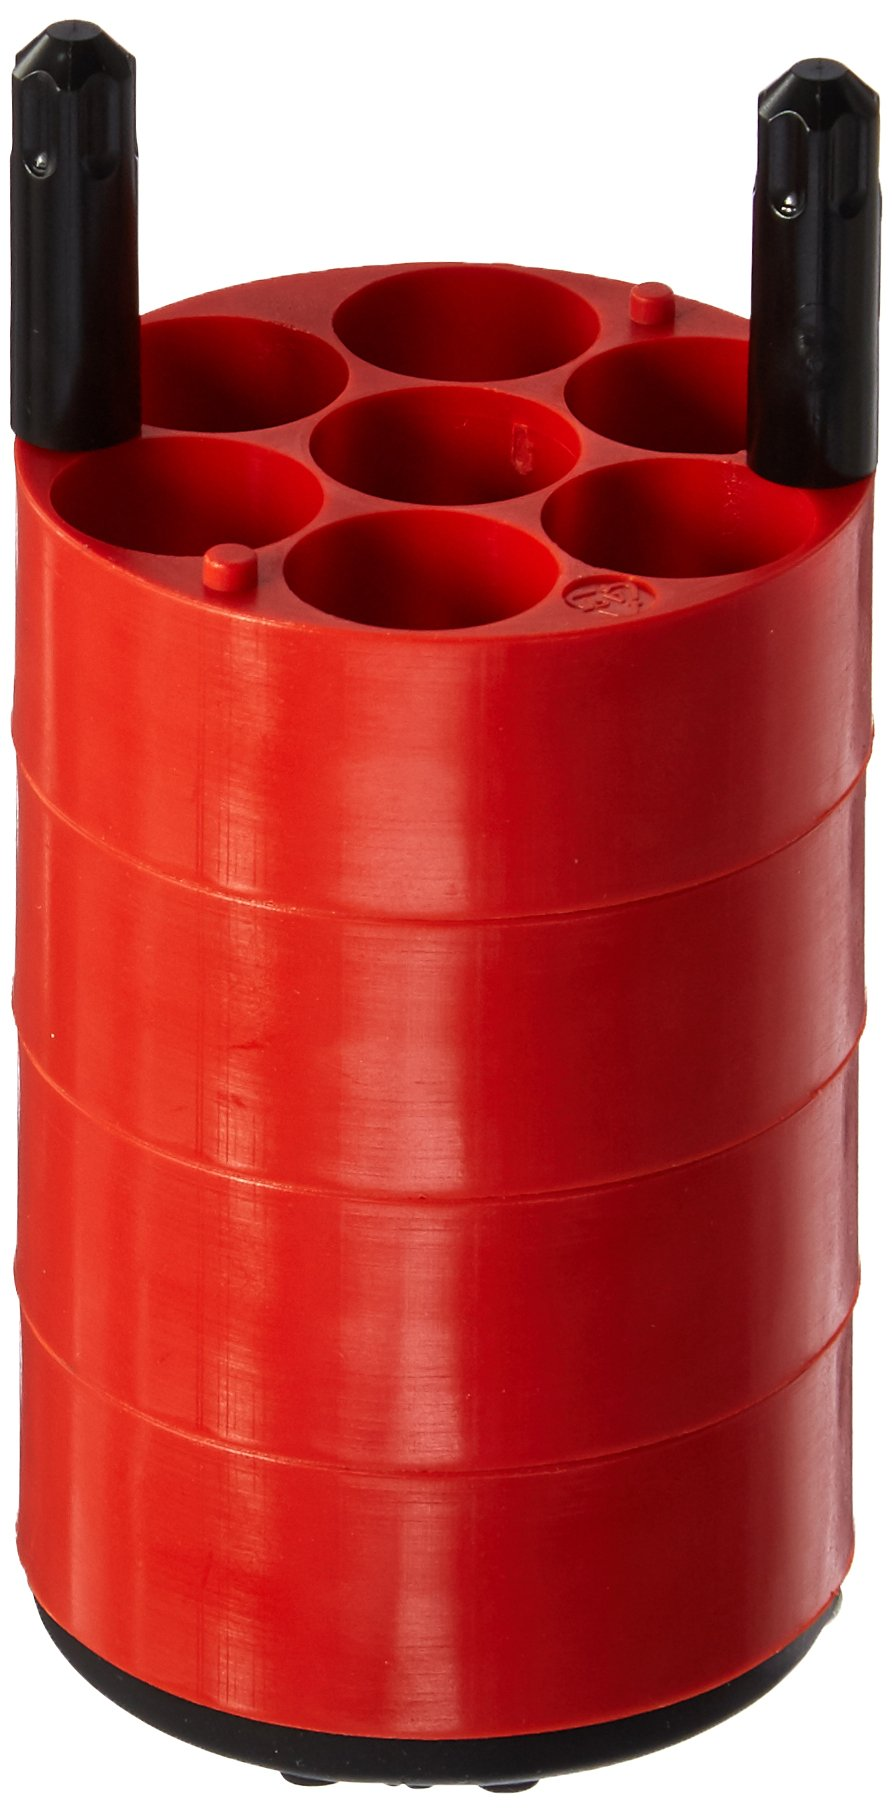 THERMO FISHER SCIENTIFIC 75008186 Sorvall Adapter for Stratus 4 mL x 180 Swing Bucket Rotor, 7 mL x 15 mL Capacity Tubes, Red